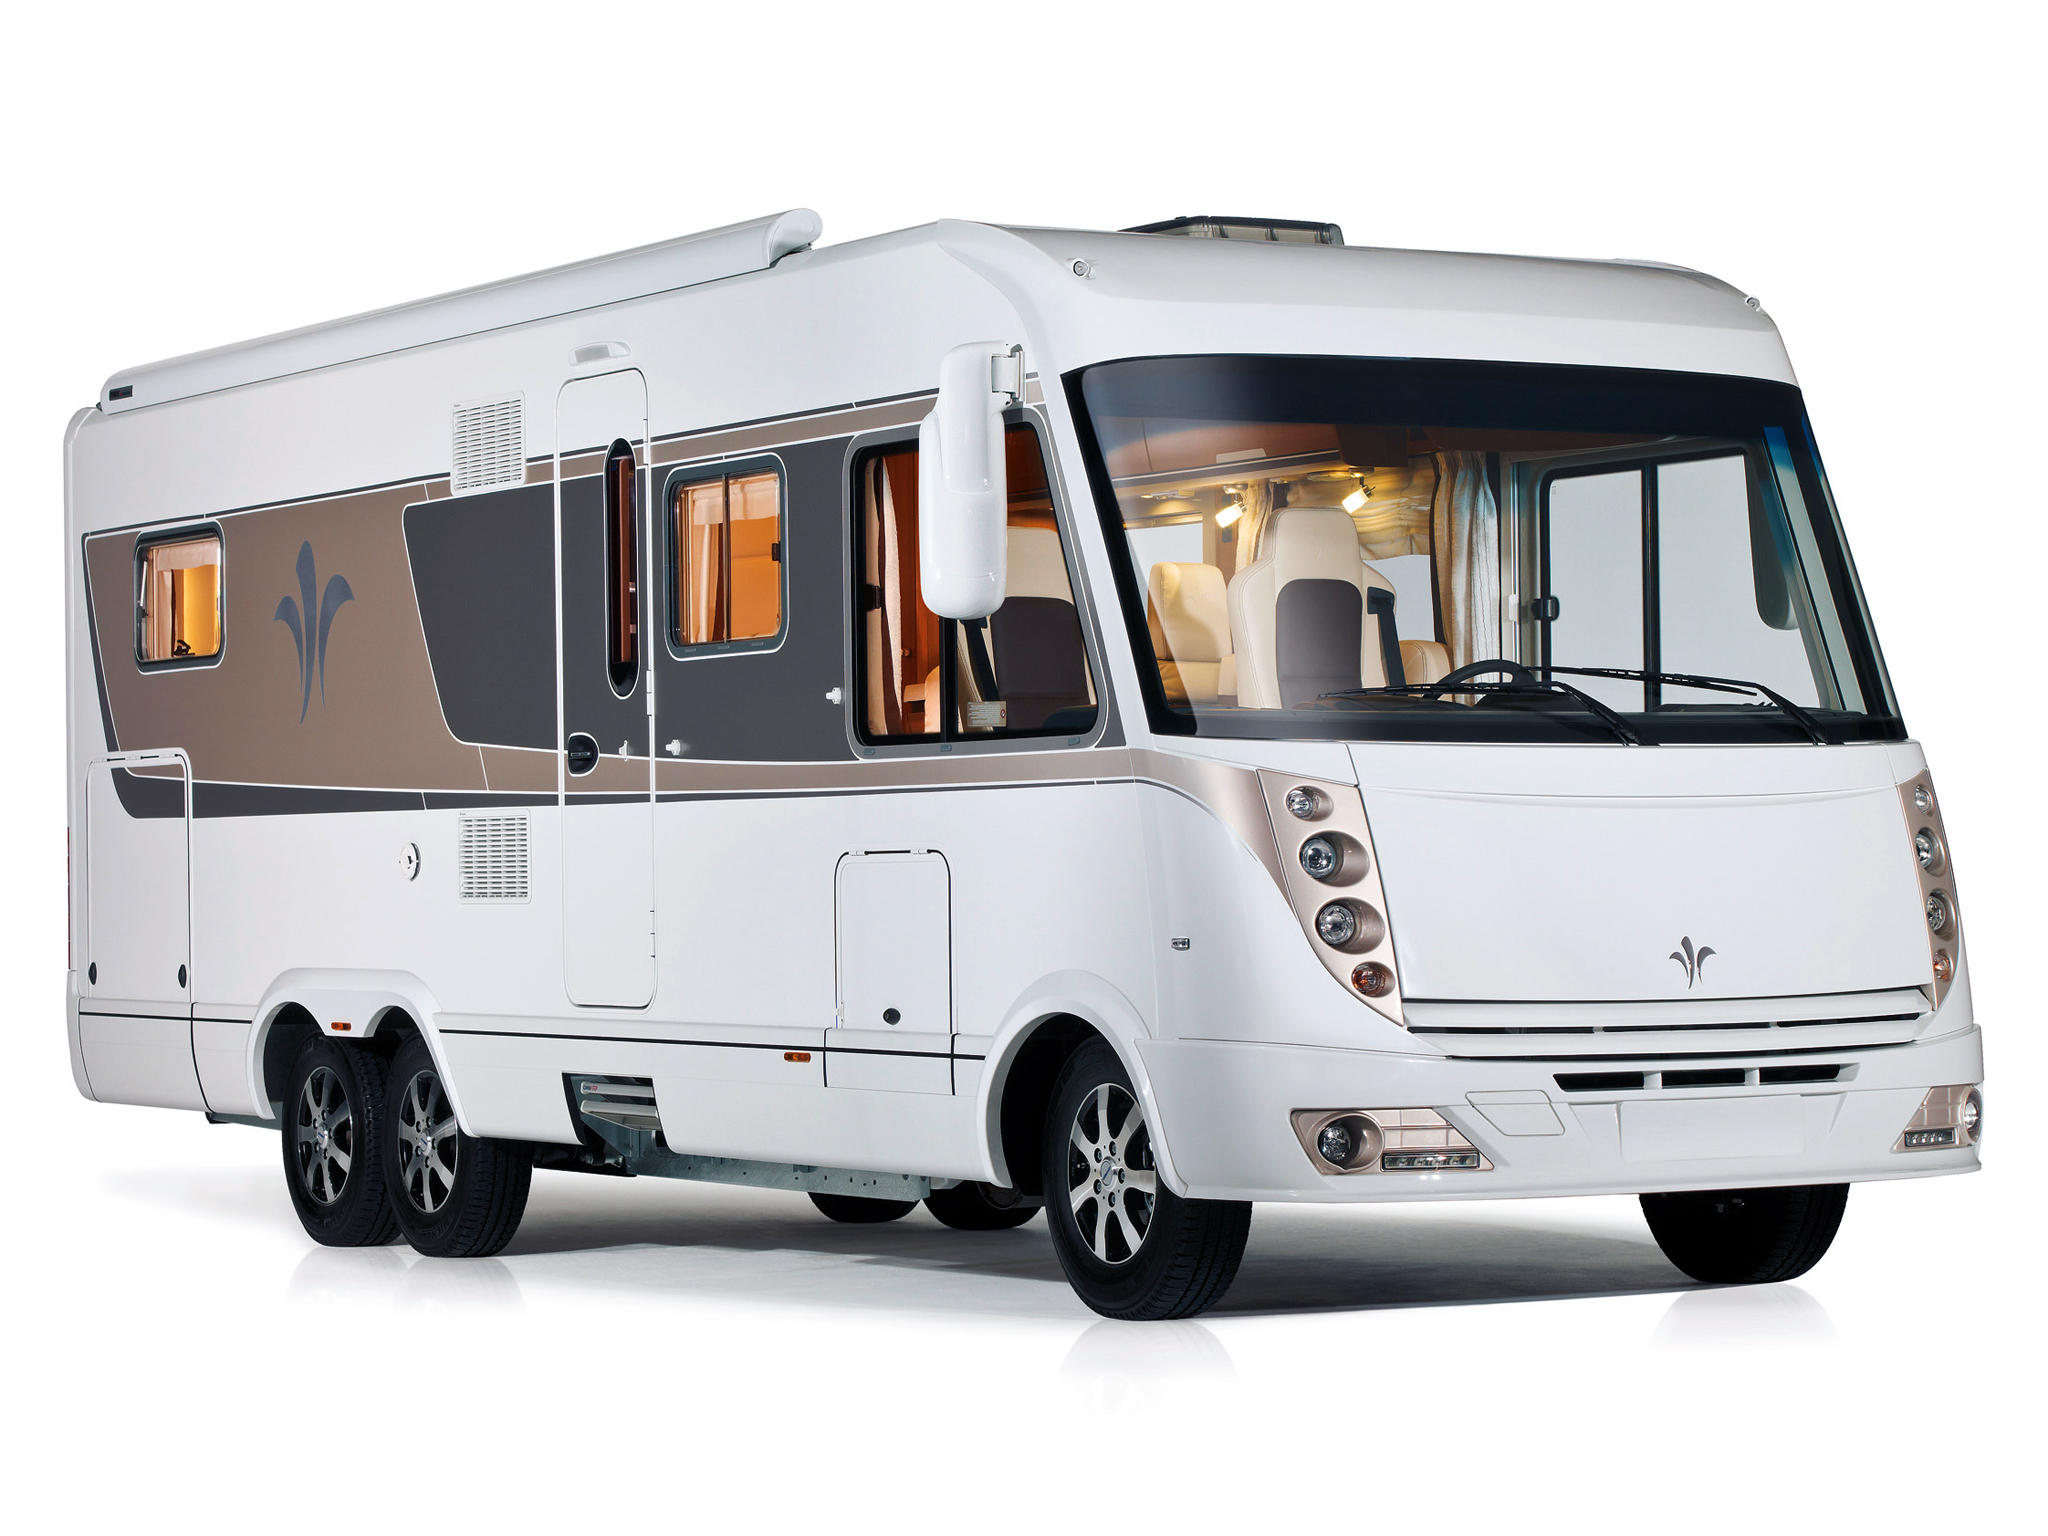 National RV Brokers fourth image